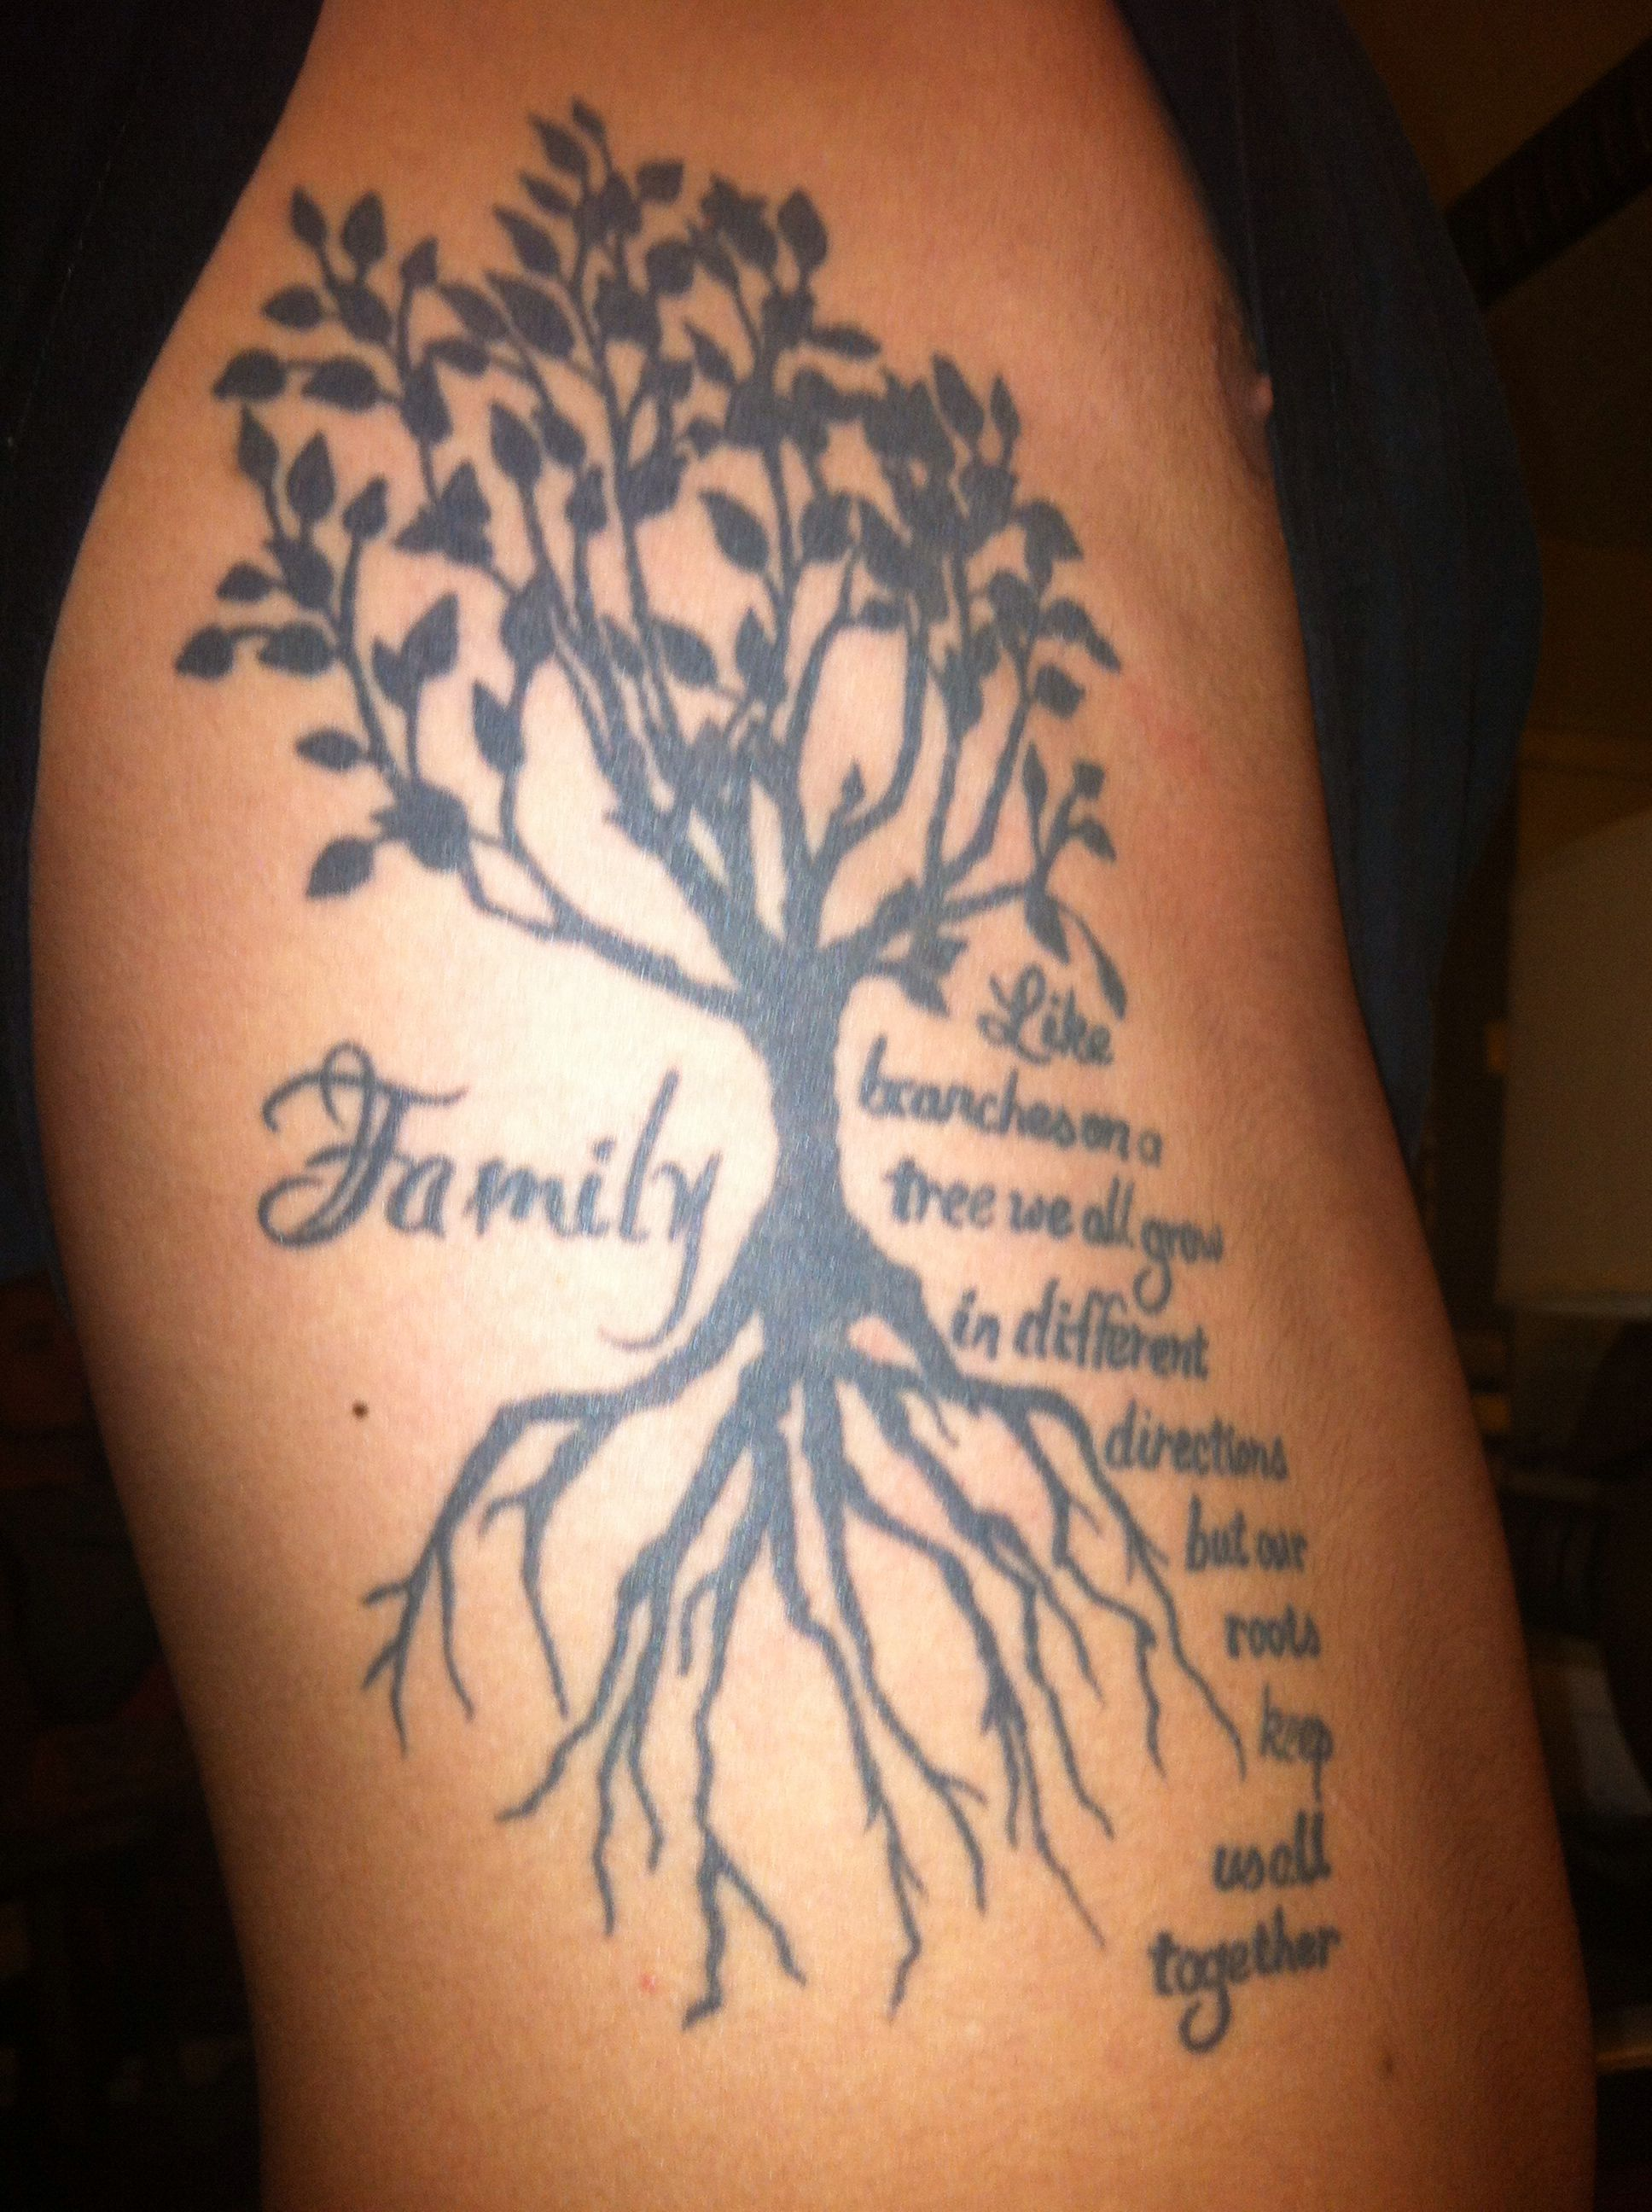 Family Tree tattoo Family tattoos, Family tree tattoo